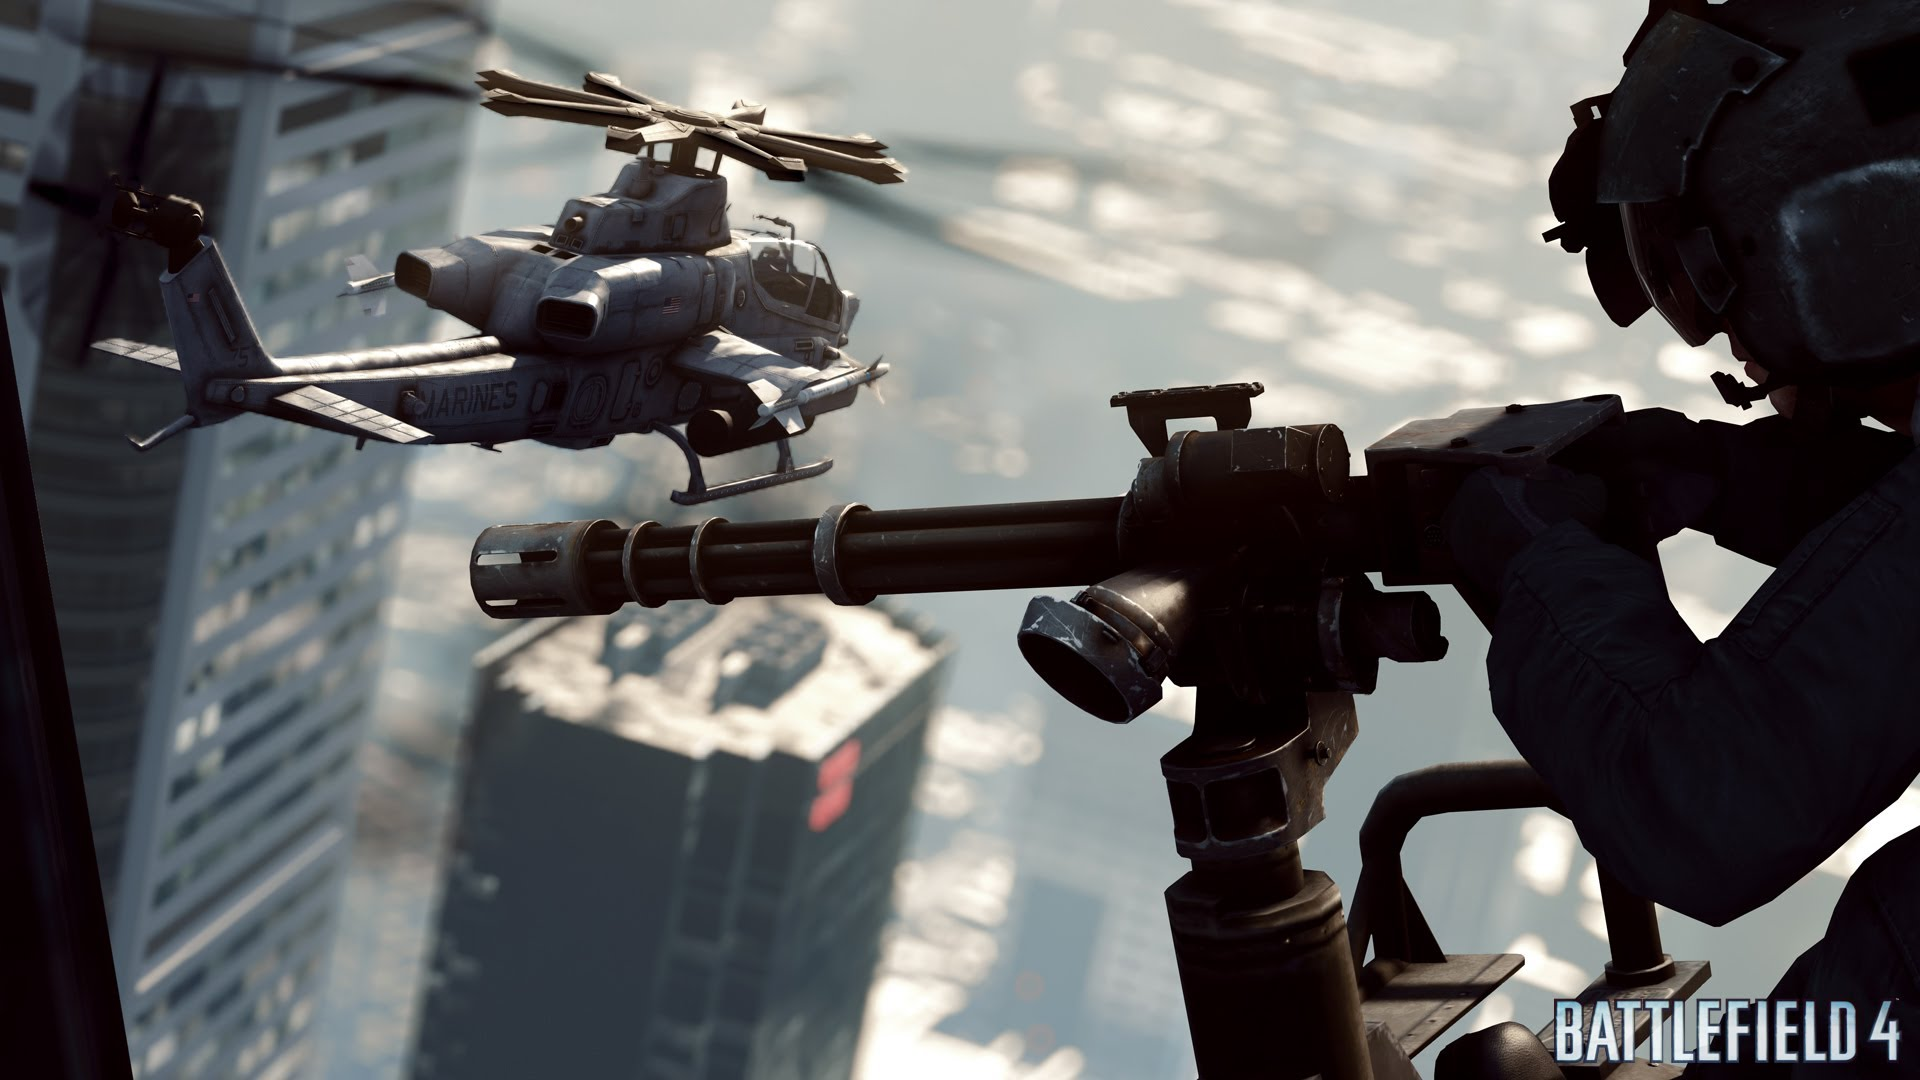 Bande annonce Battlefield 4: Official « Siege of Shanghai » Multiplayer